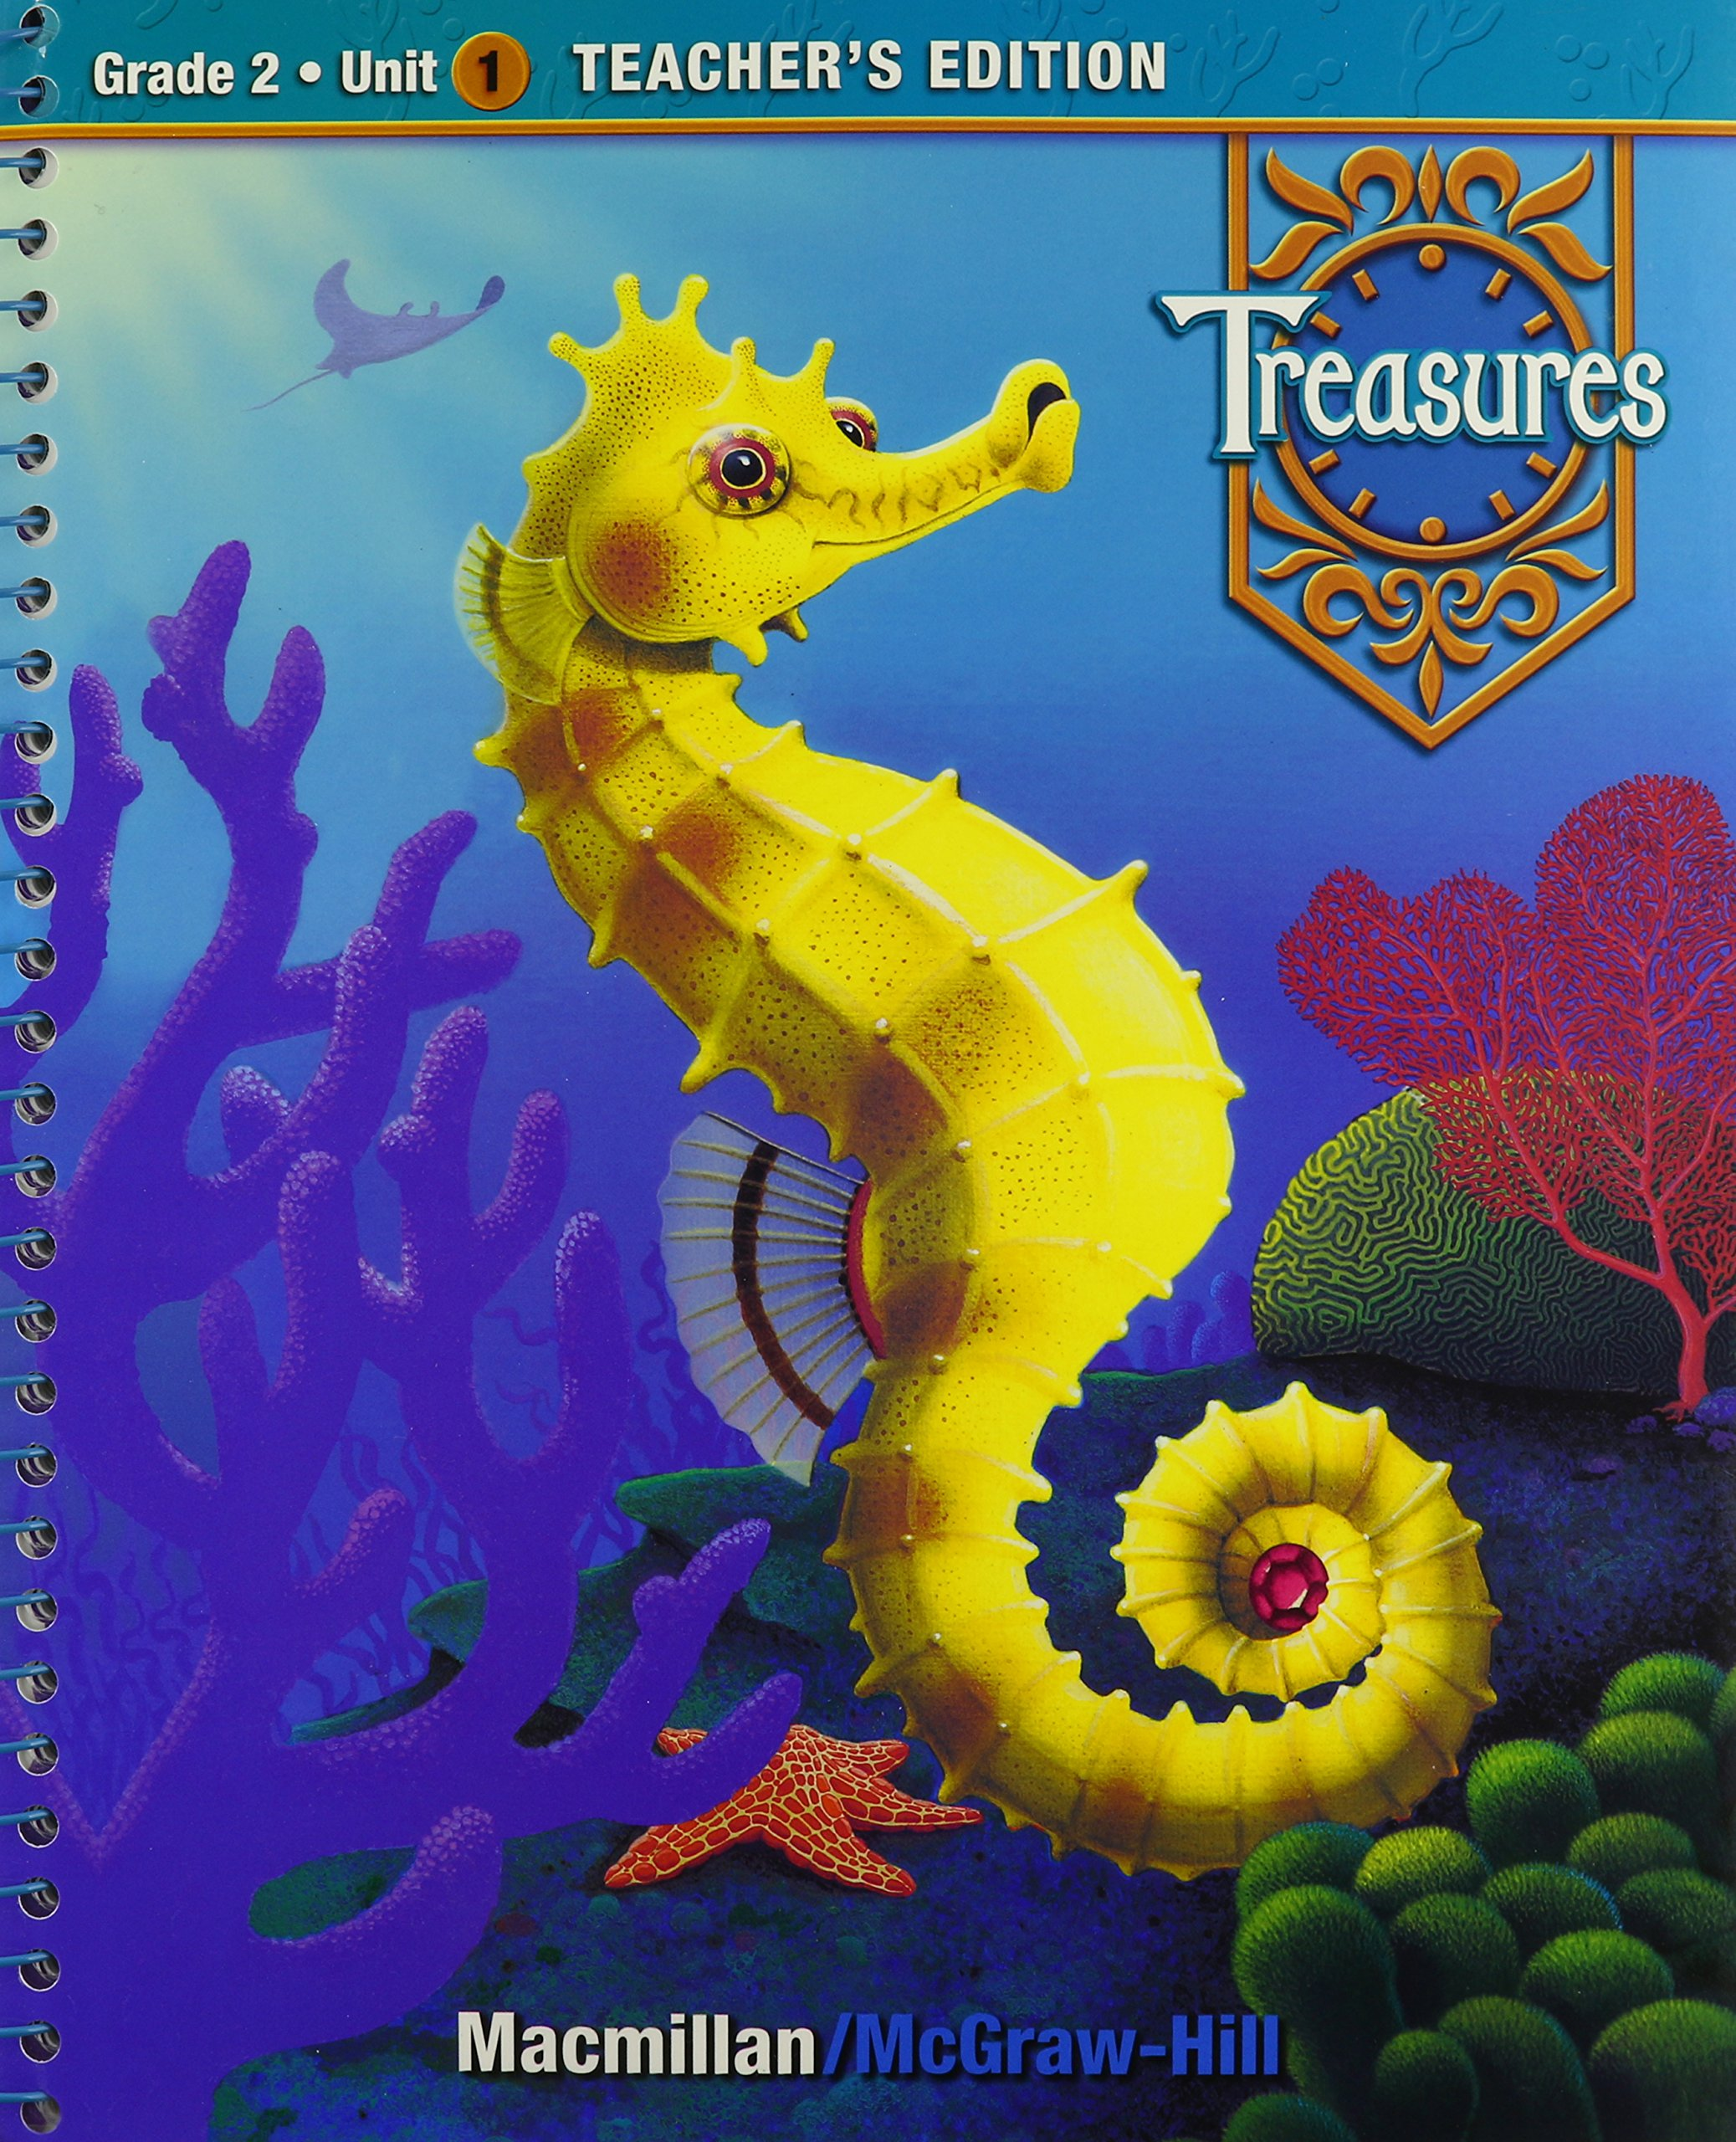 Treasures, A Reading/Language Arts Program, Grade 2, Unit 1 Teacher Edition (ELEMENTARY READING TREASURES) by McGraw-Hill Education